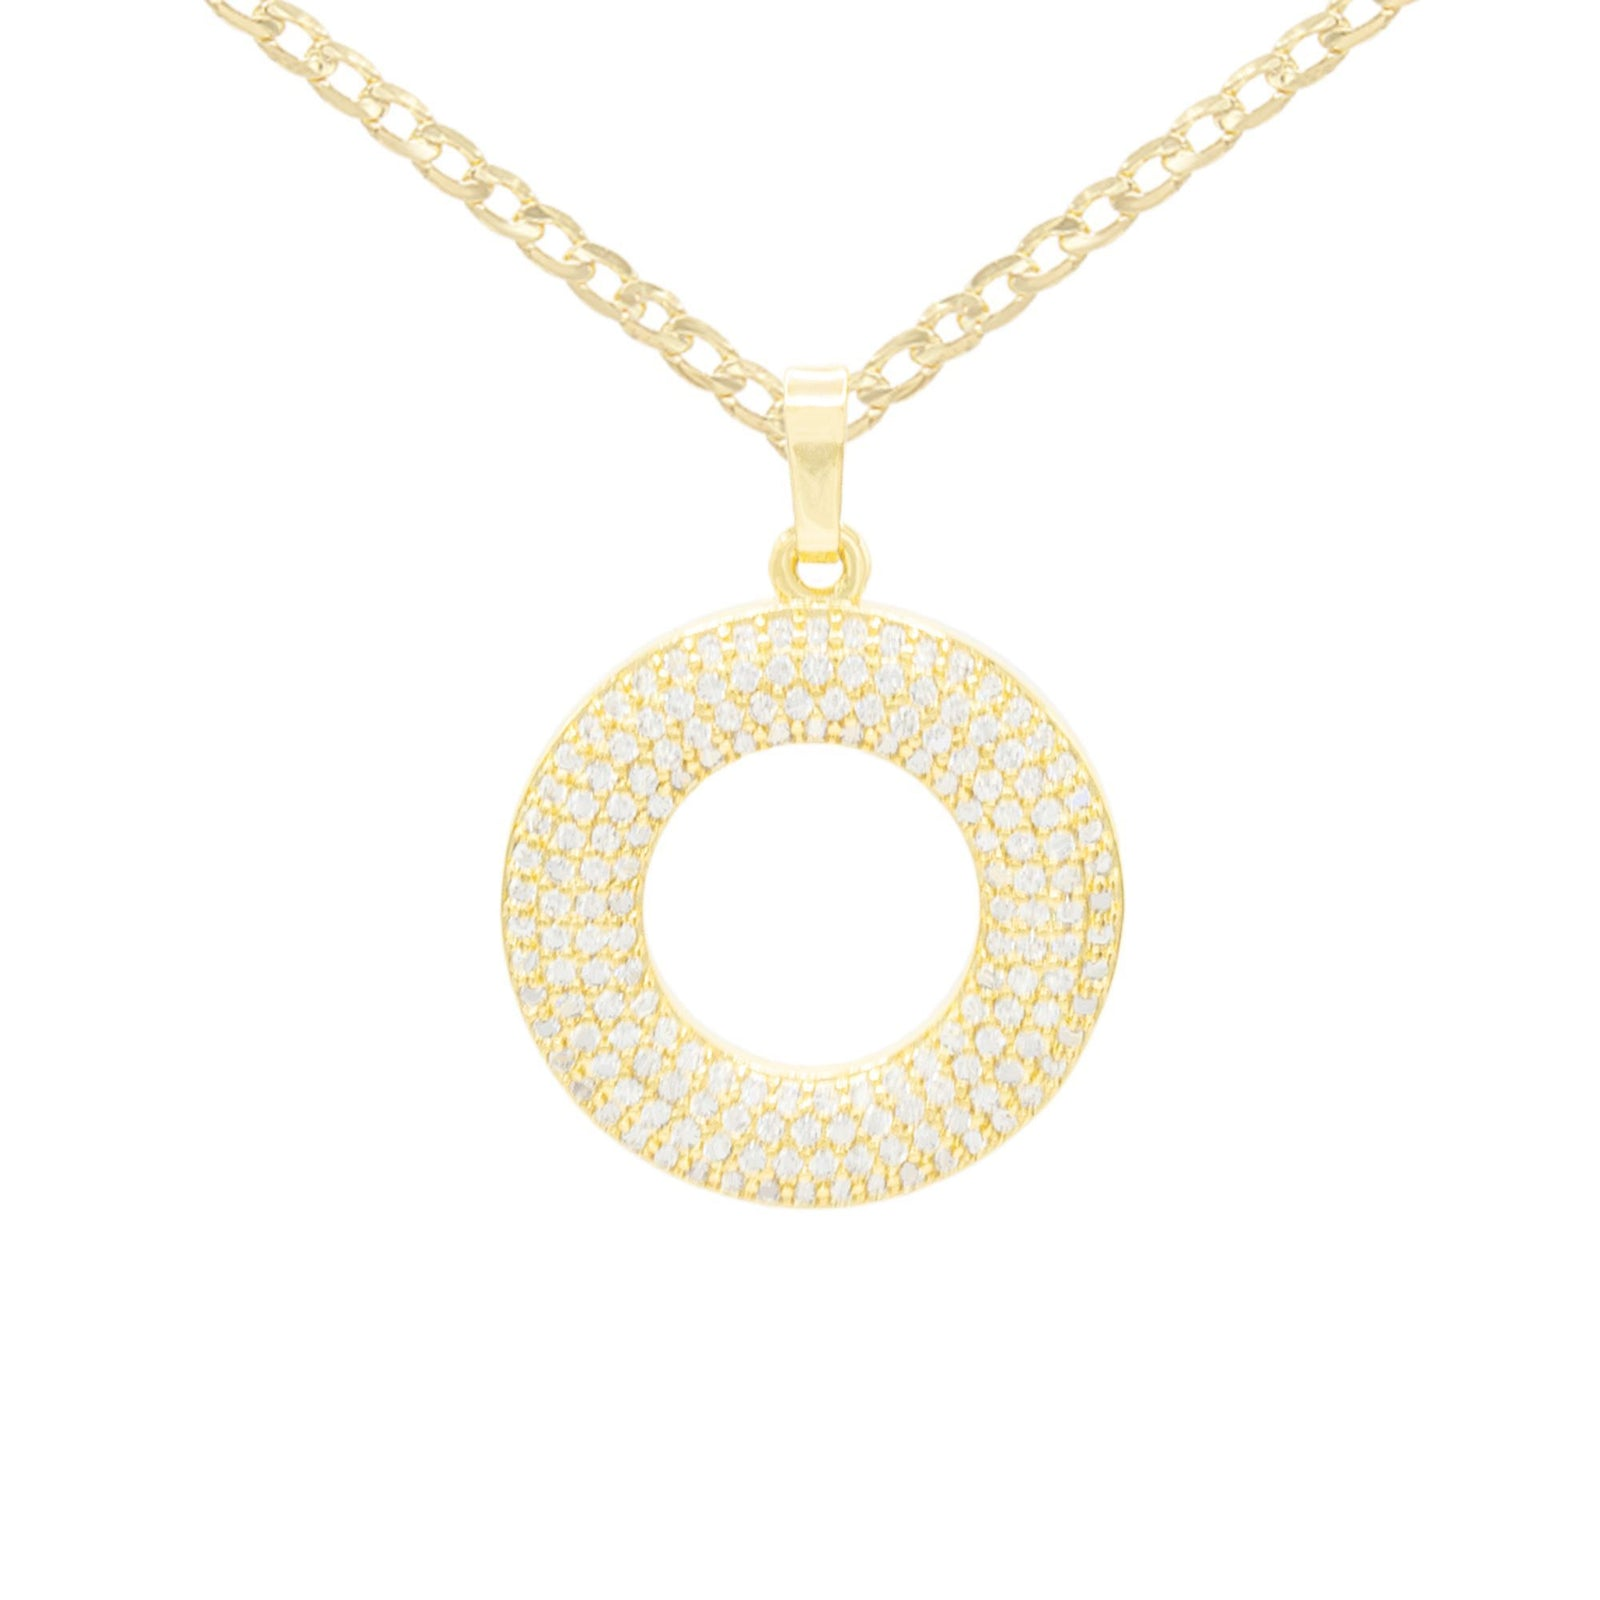 Round Cubic Zirconia Pendant With Necklace Set 14K Gold Filled